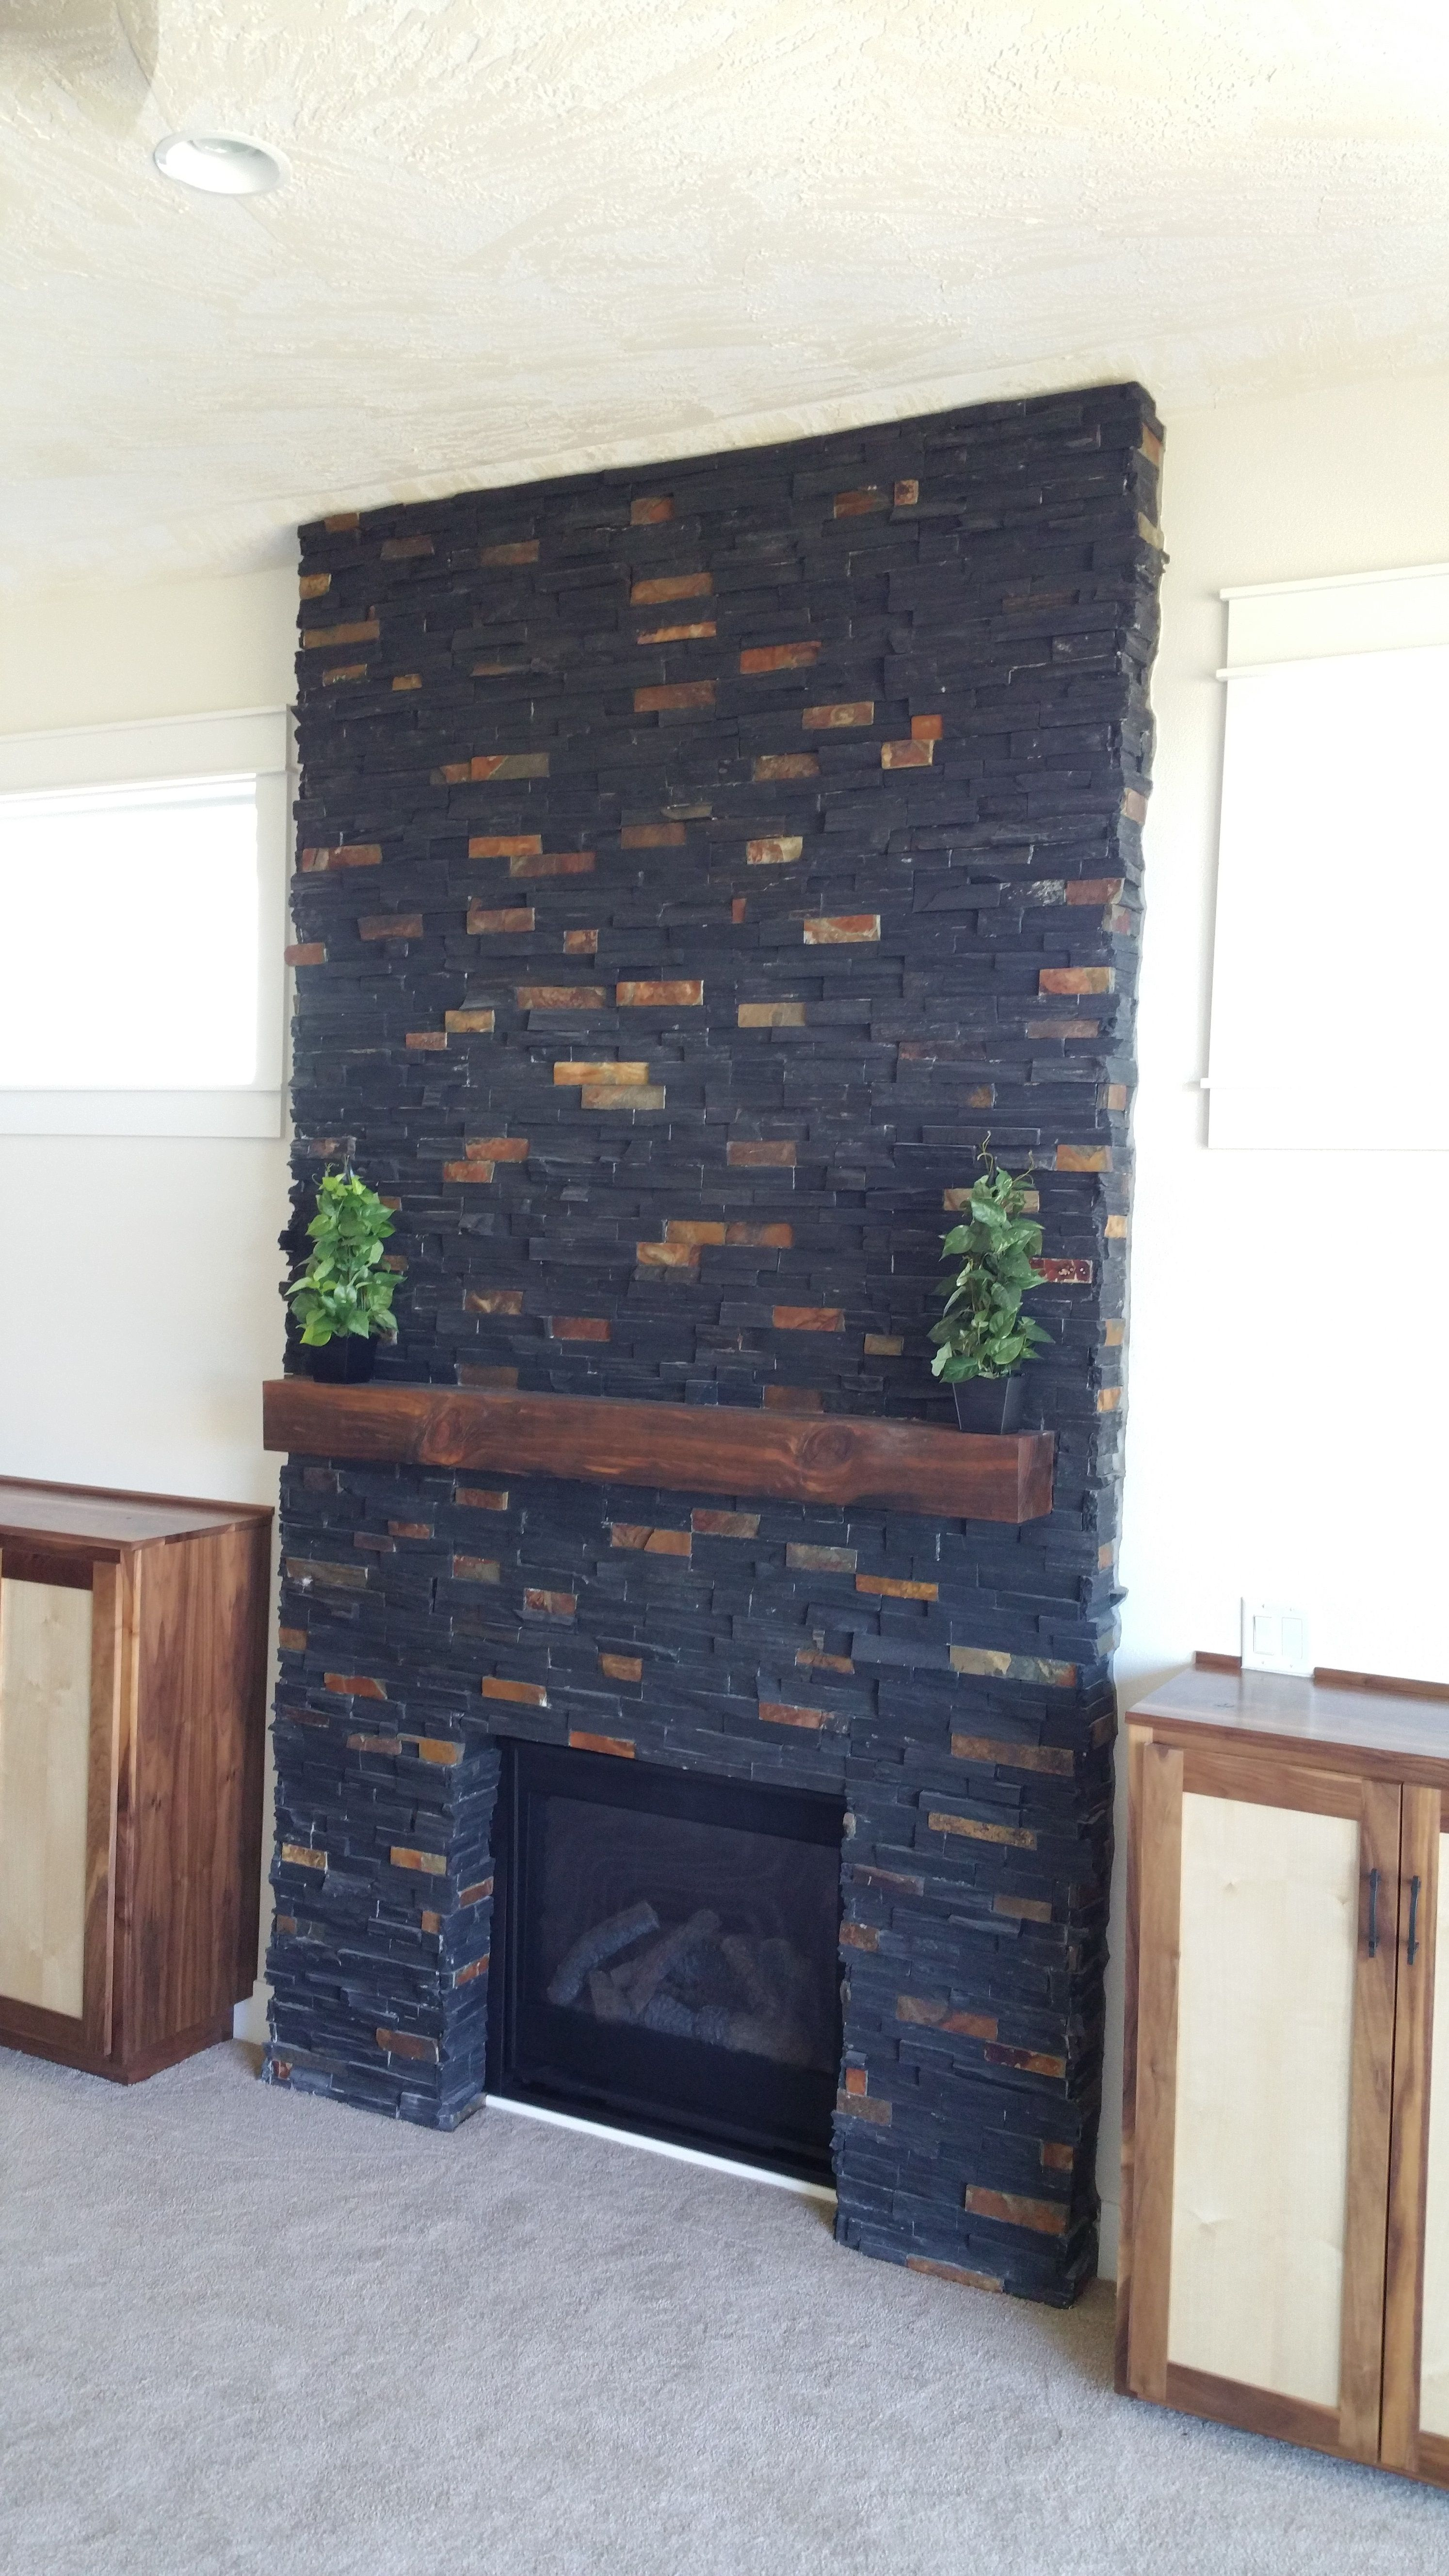 Charcoal Rust Ledger Stone Accent Wall And Fireplace Surround Black With Tones